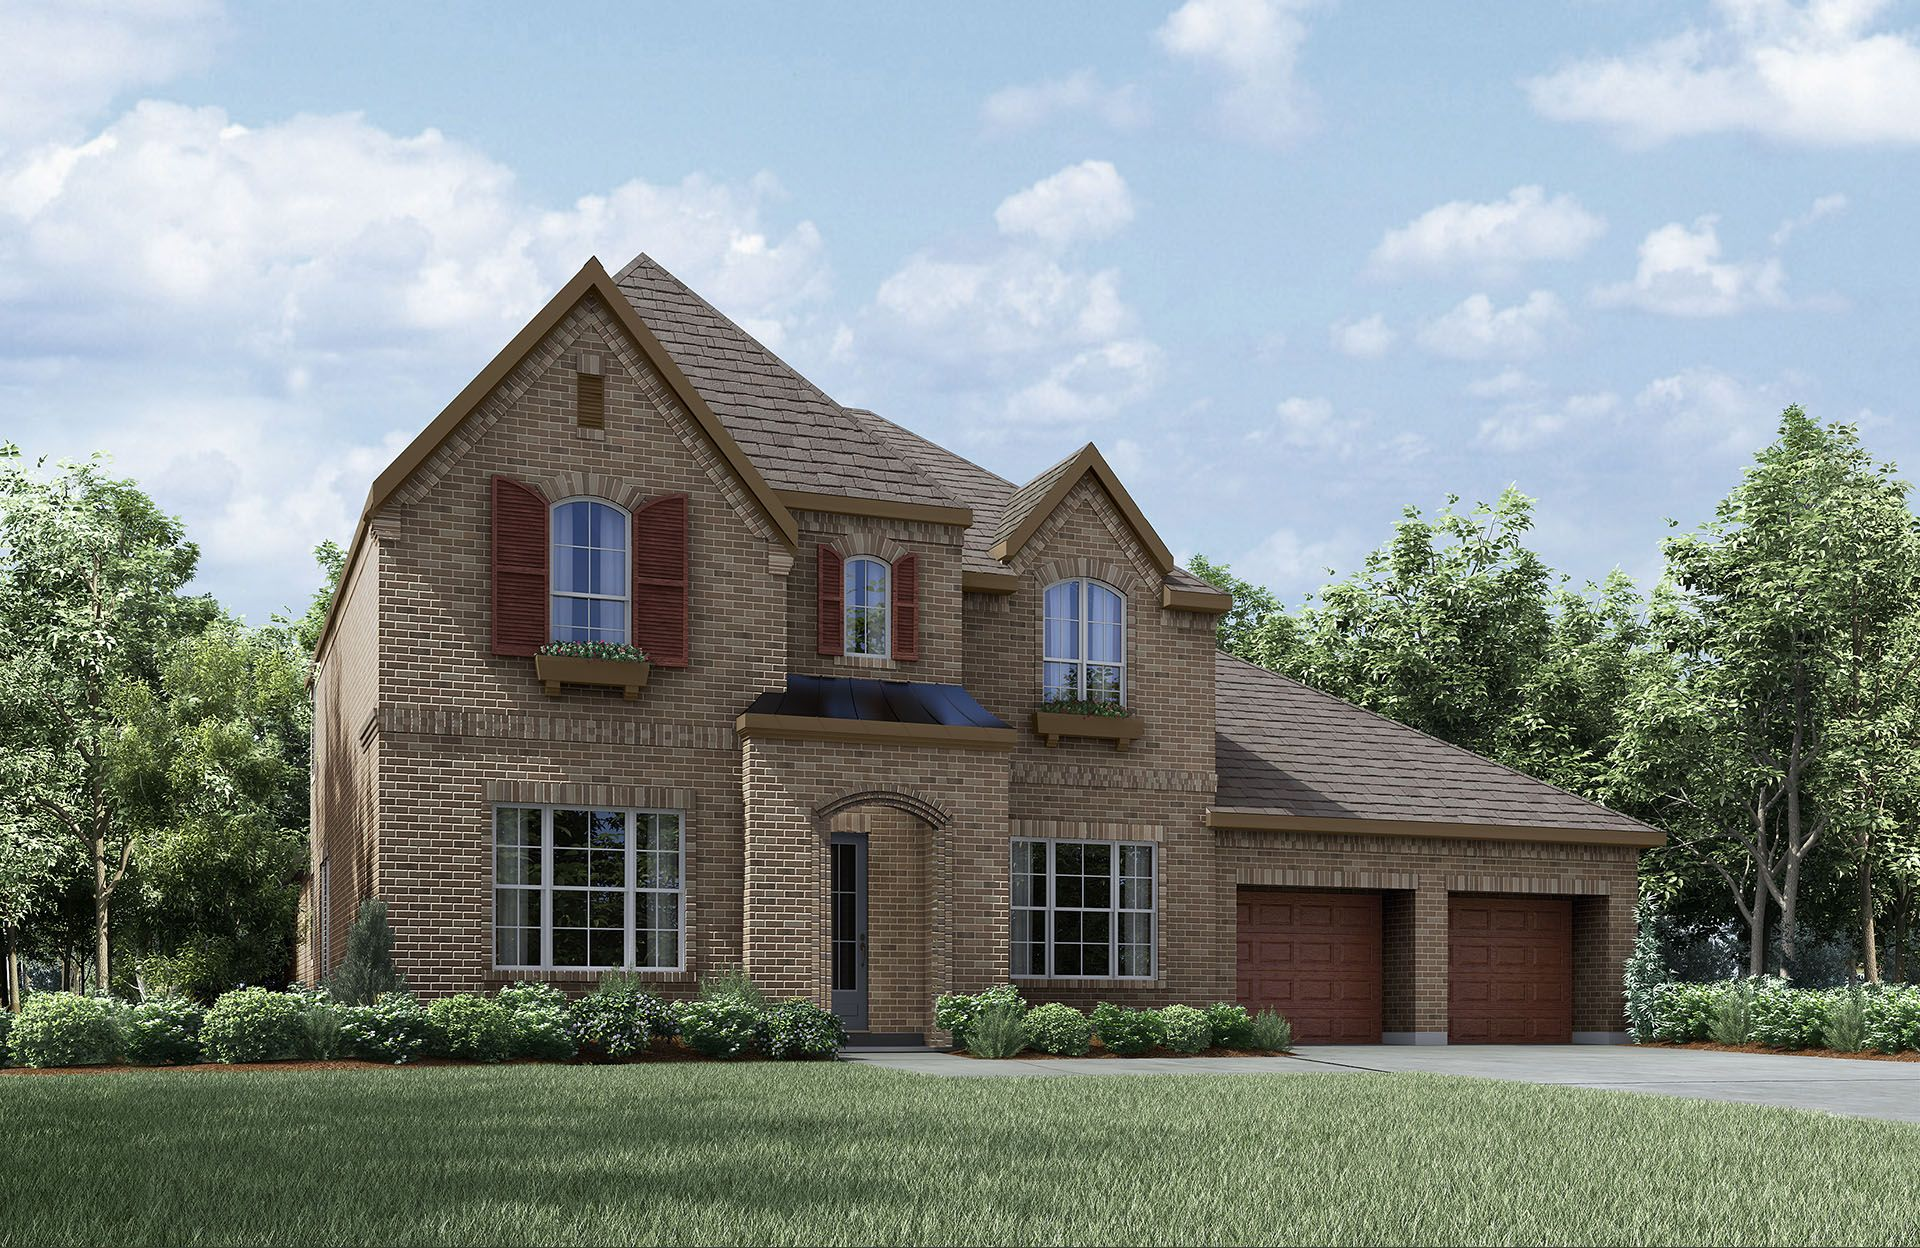 Single Family for Active at Tanner 7016 Union Park Blvd East Aubrey, Texas 76227 United States